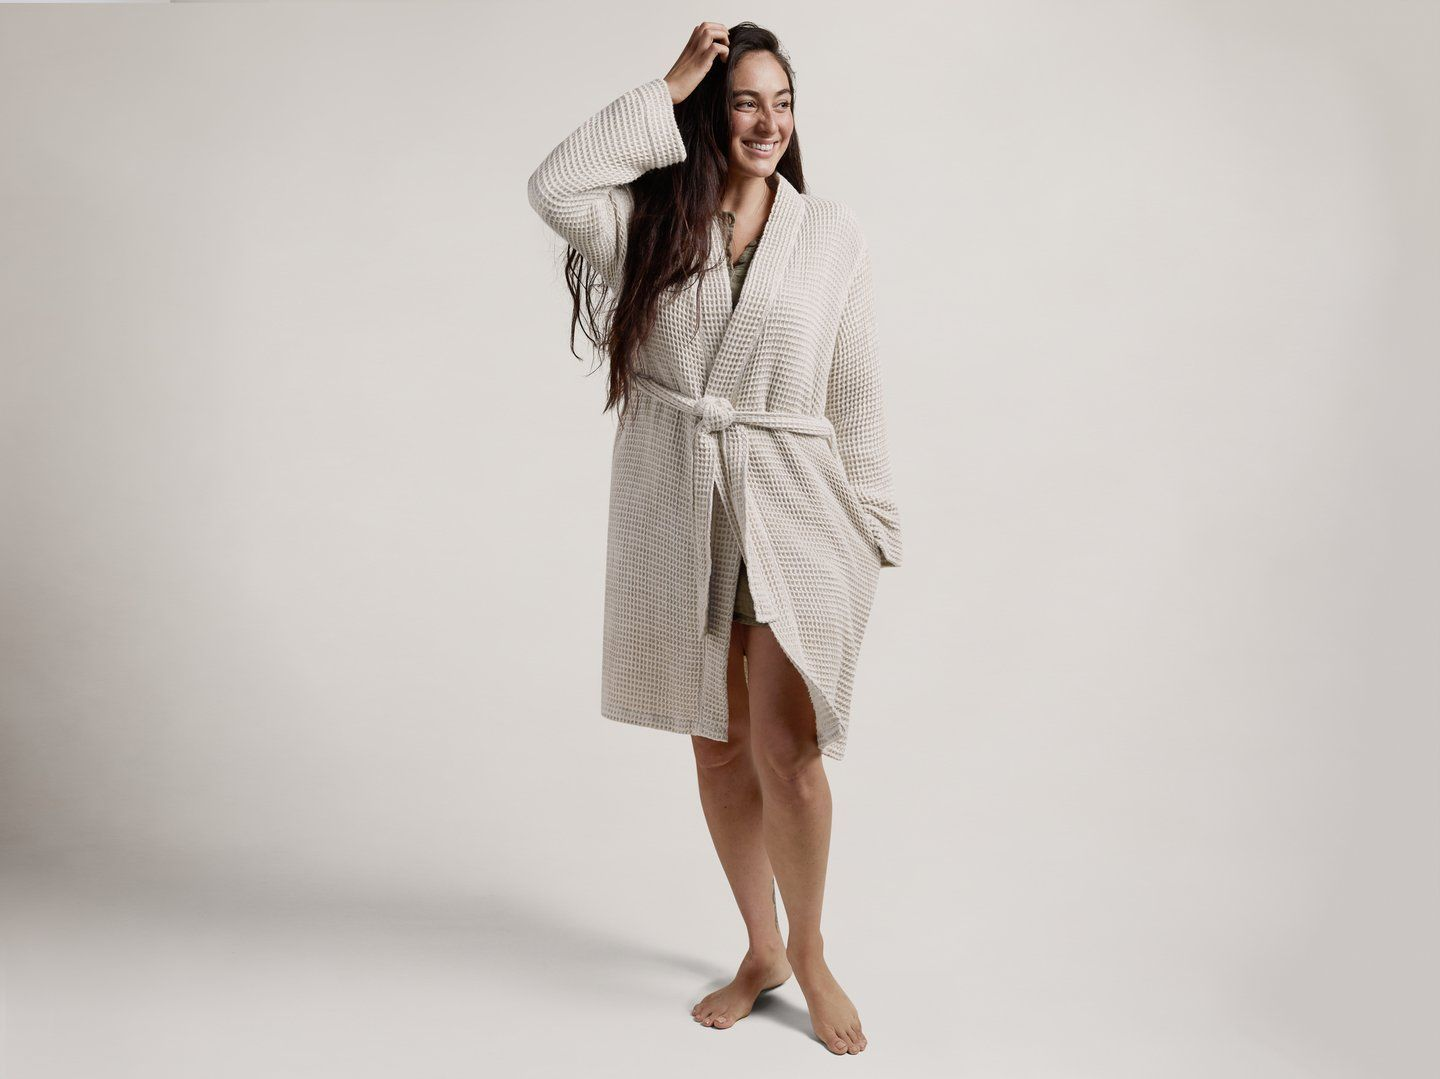 10 Best Robes For Women Stylish Bathrobes For Women To Wear